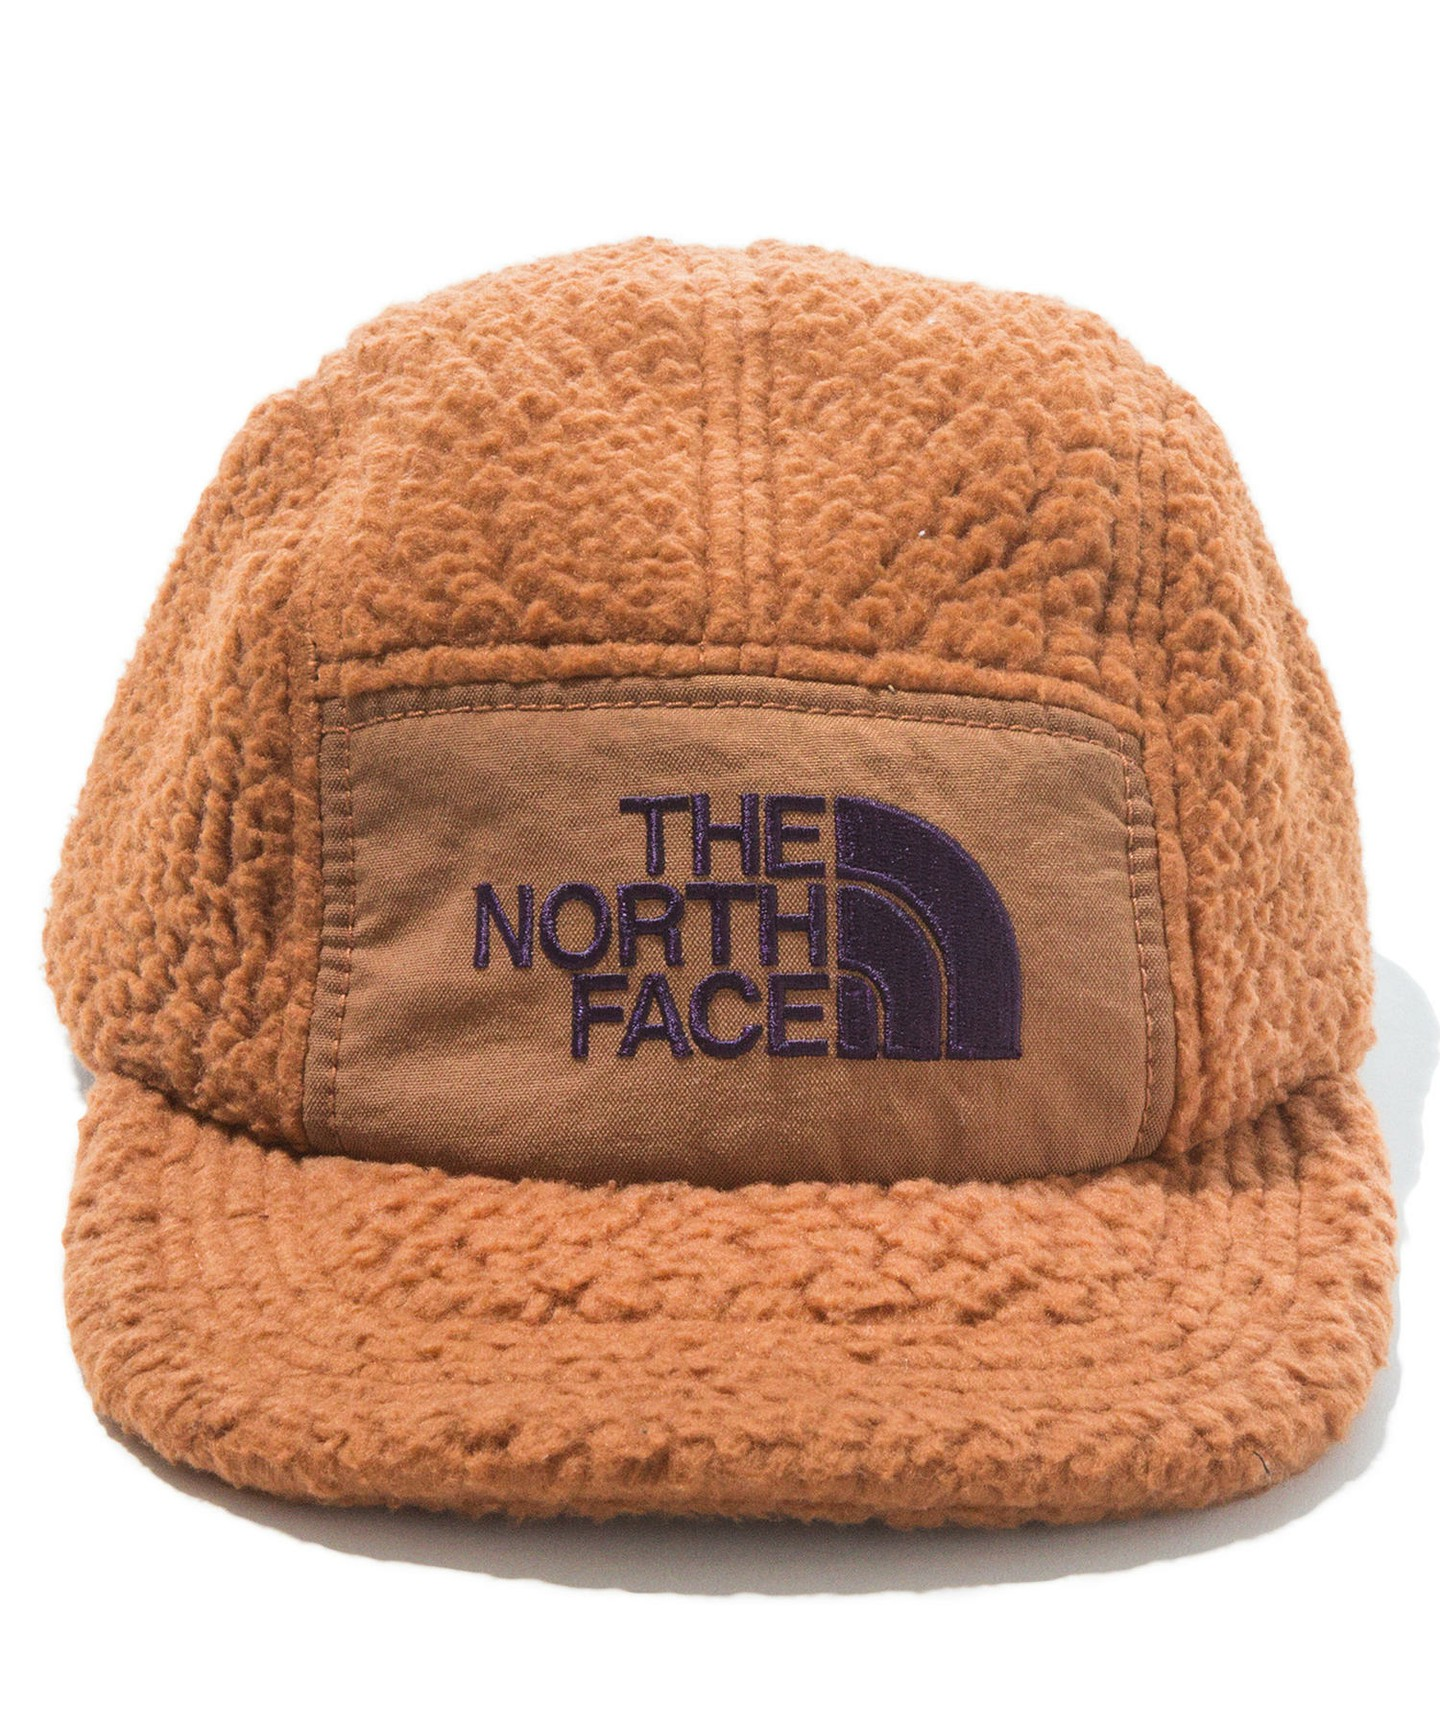 ea1a7c047cb3 Pieces from The North Face Purple Label x BEAUTY   YOUTH Bespoke capsule  collection are available for preorder right now through the United Arrows  online ...